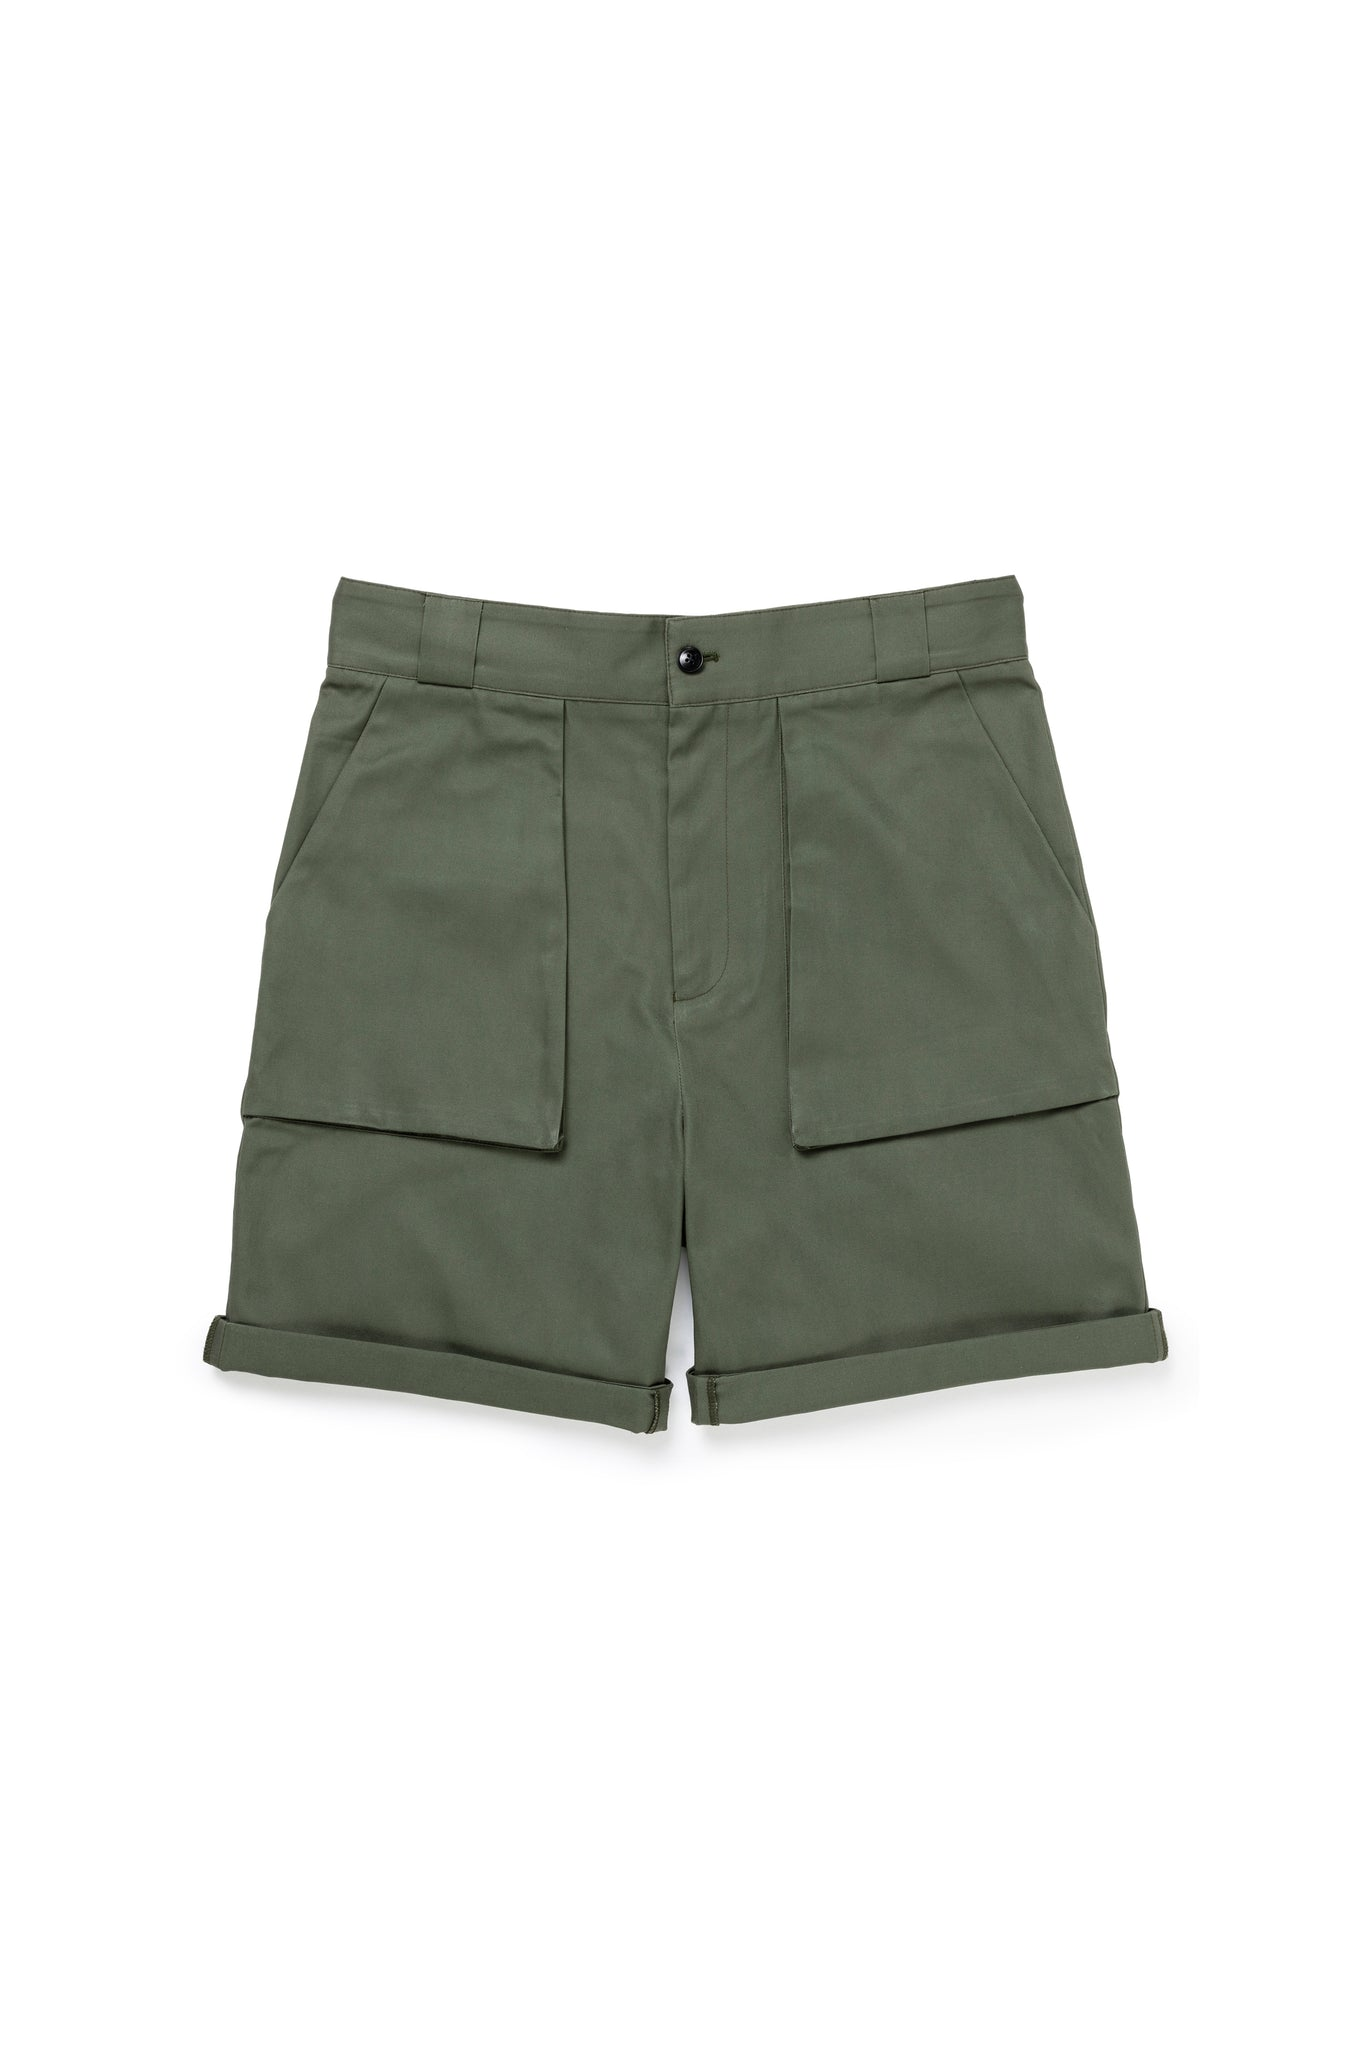 Green Superfine Cotton Walking Shorts